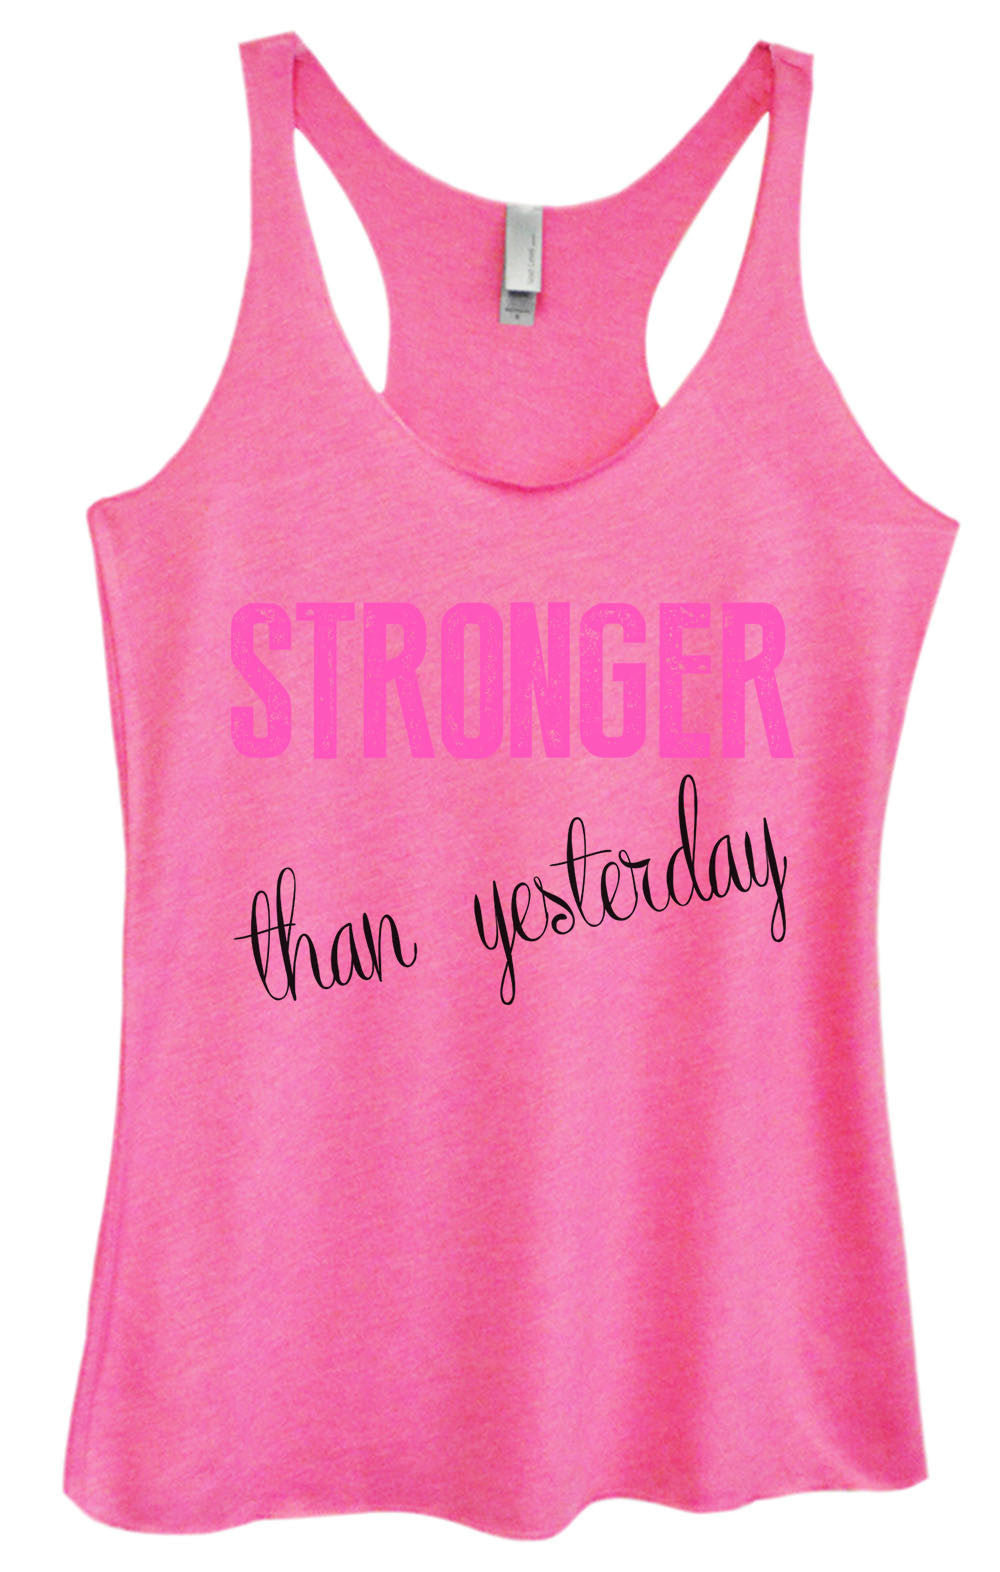 Womens Fashion Triblend Tank Top - Stronger Than Yesterday - Tri-768 - Funny Shirts Tank Tops Burnouts and Triblends  - 3